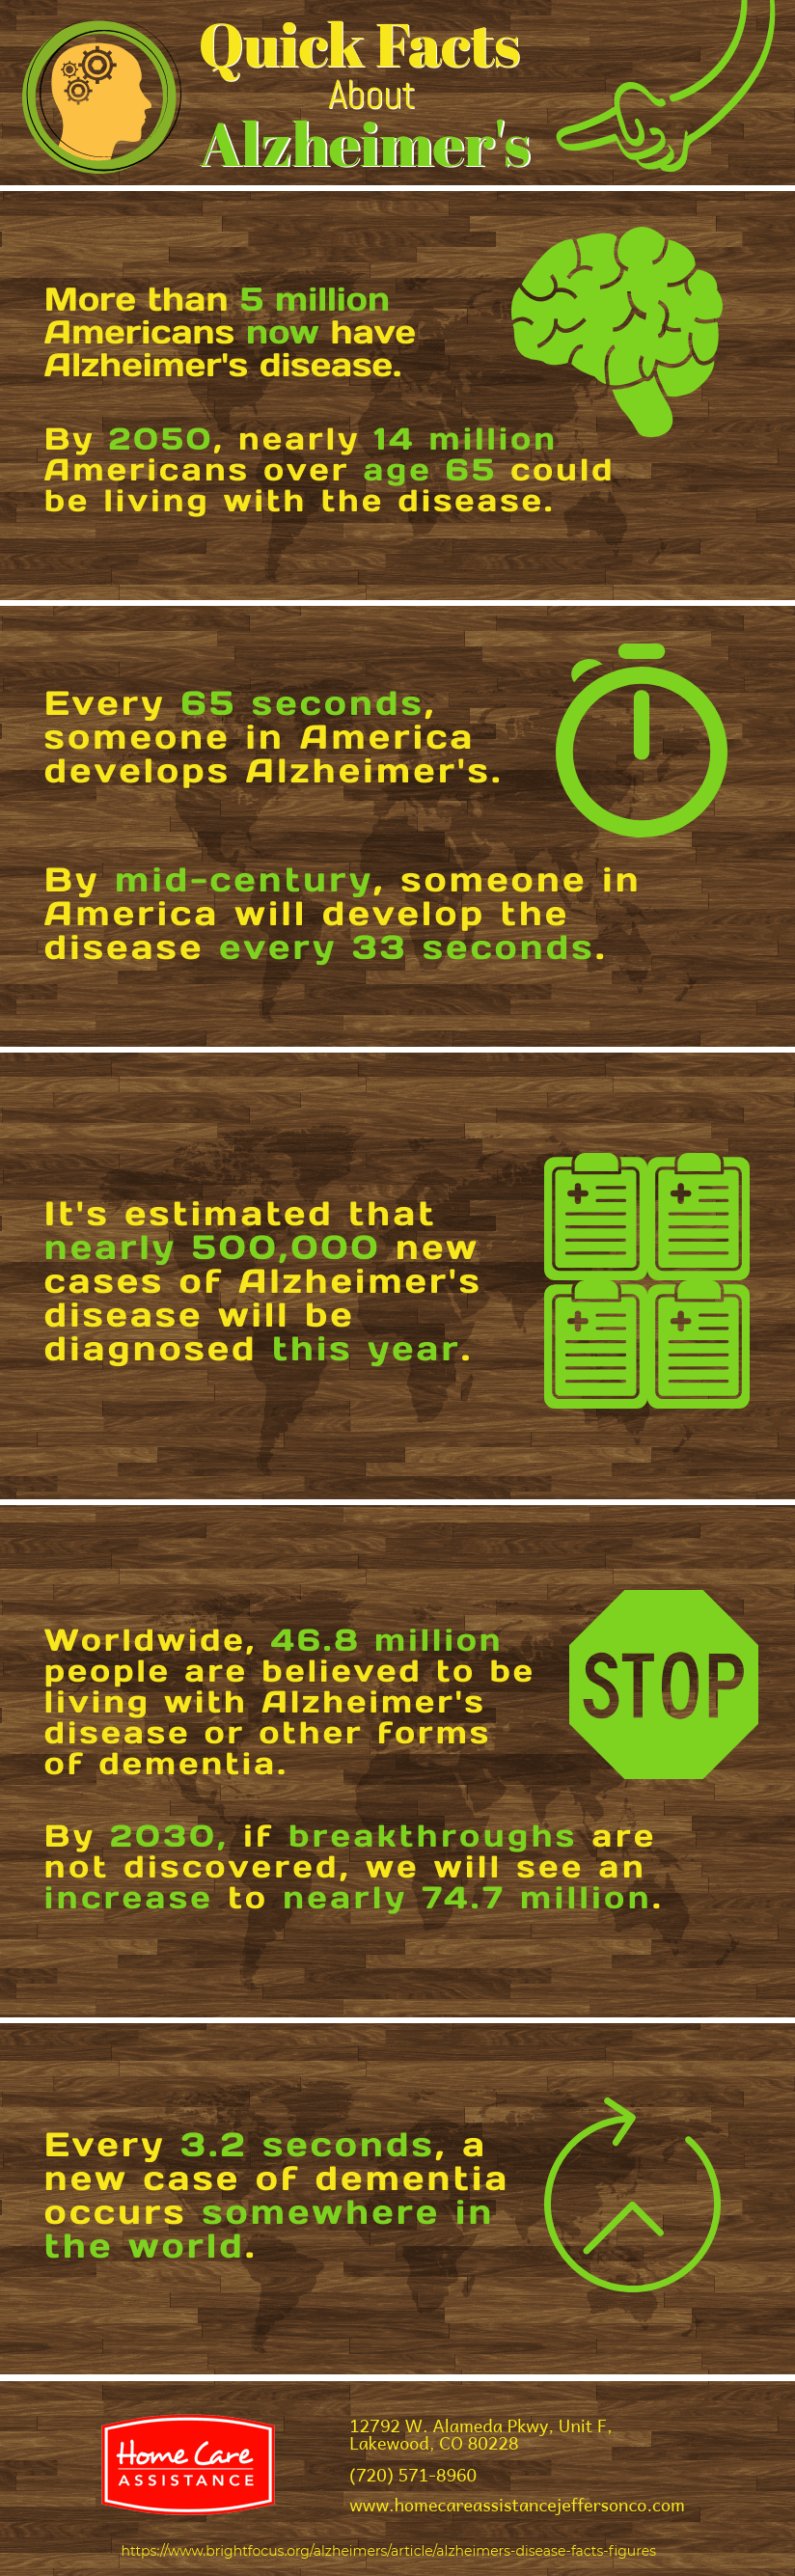 Basic Facts About Alzheimer's Disease